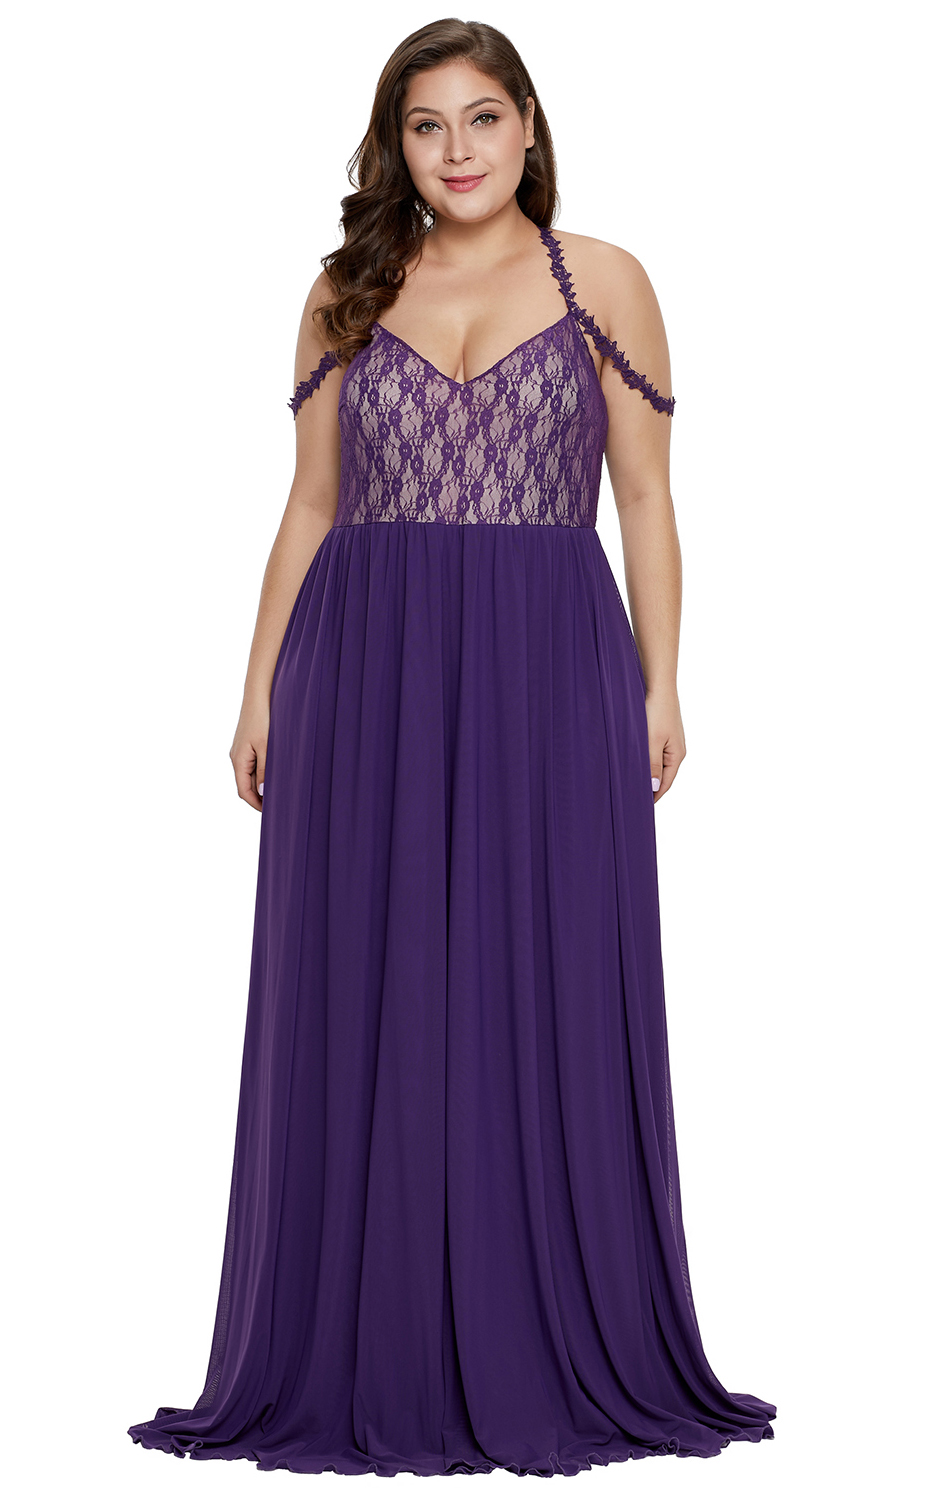 BY611063-8 Purple Lace Bodice Hollow-out Plus Size Maxi Dress